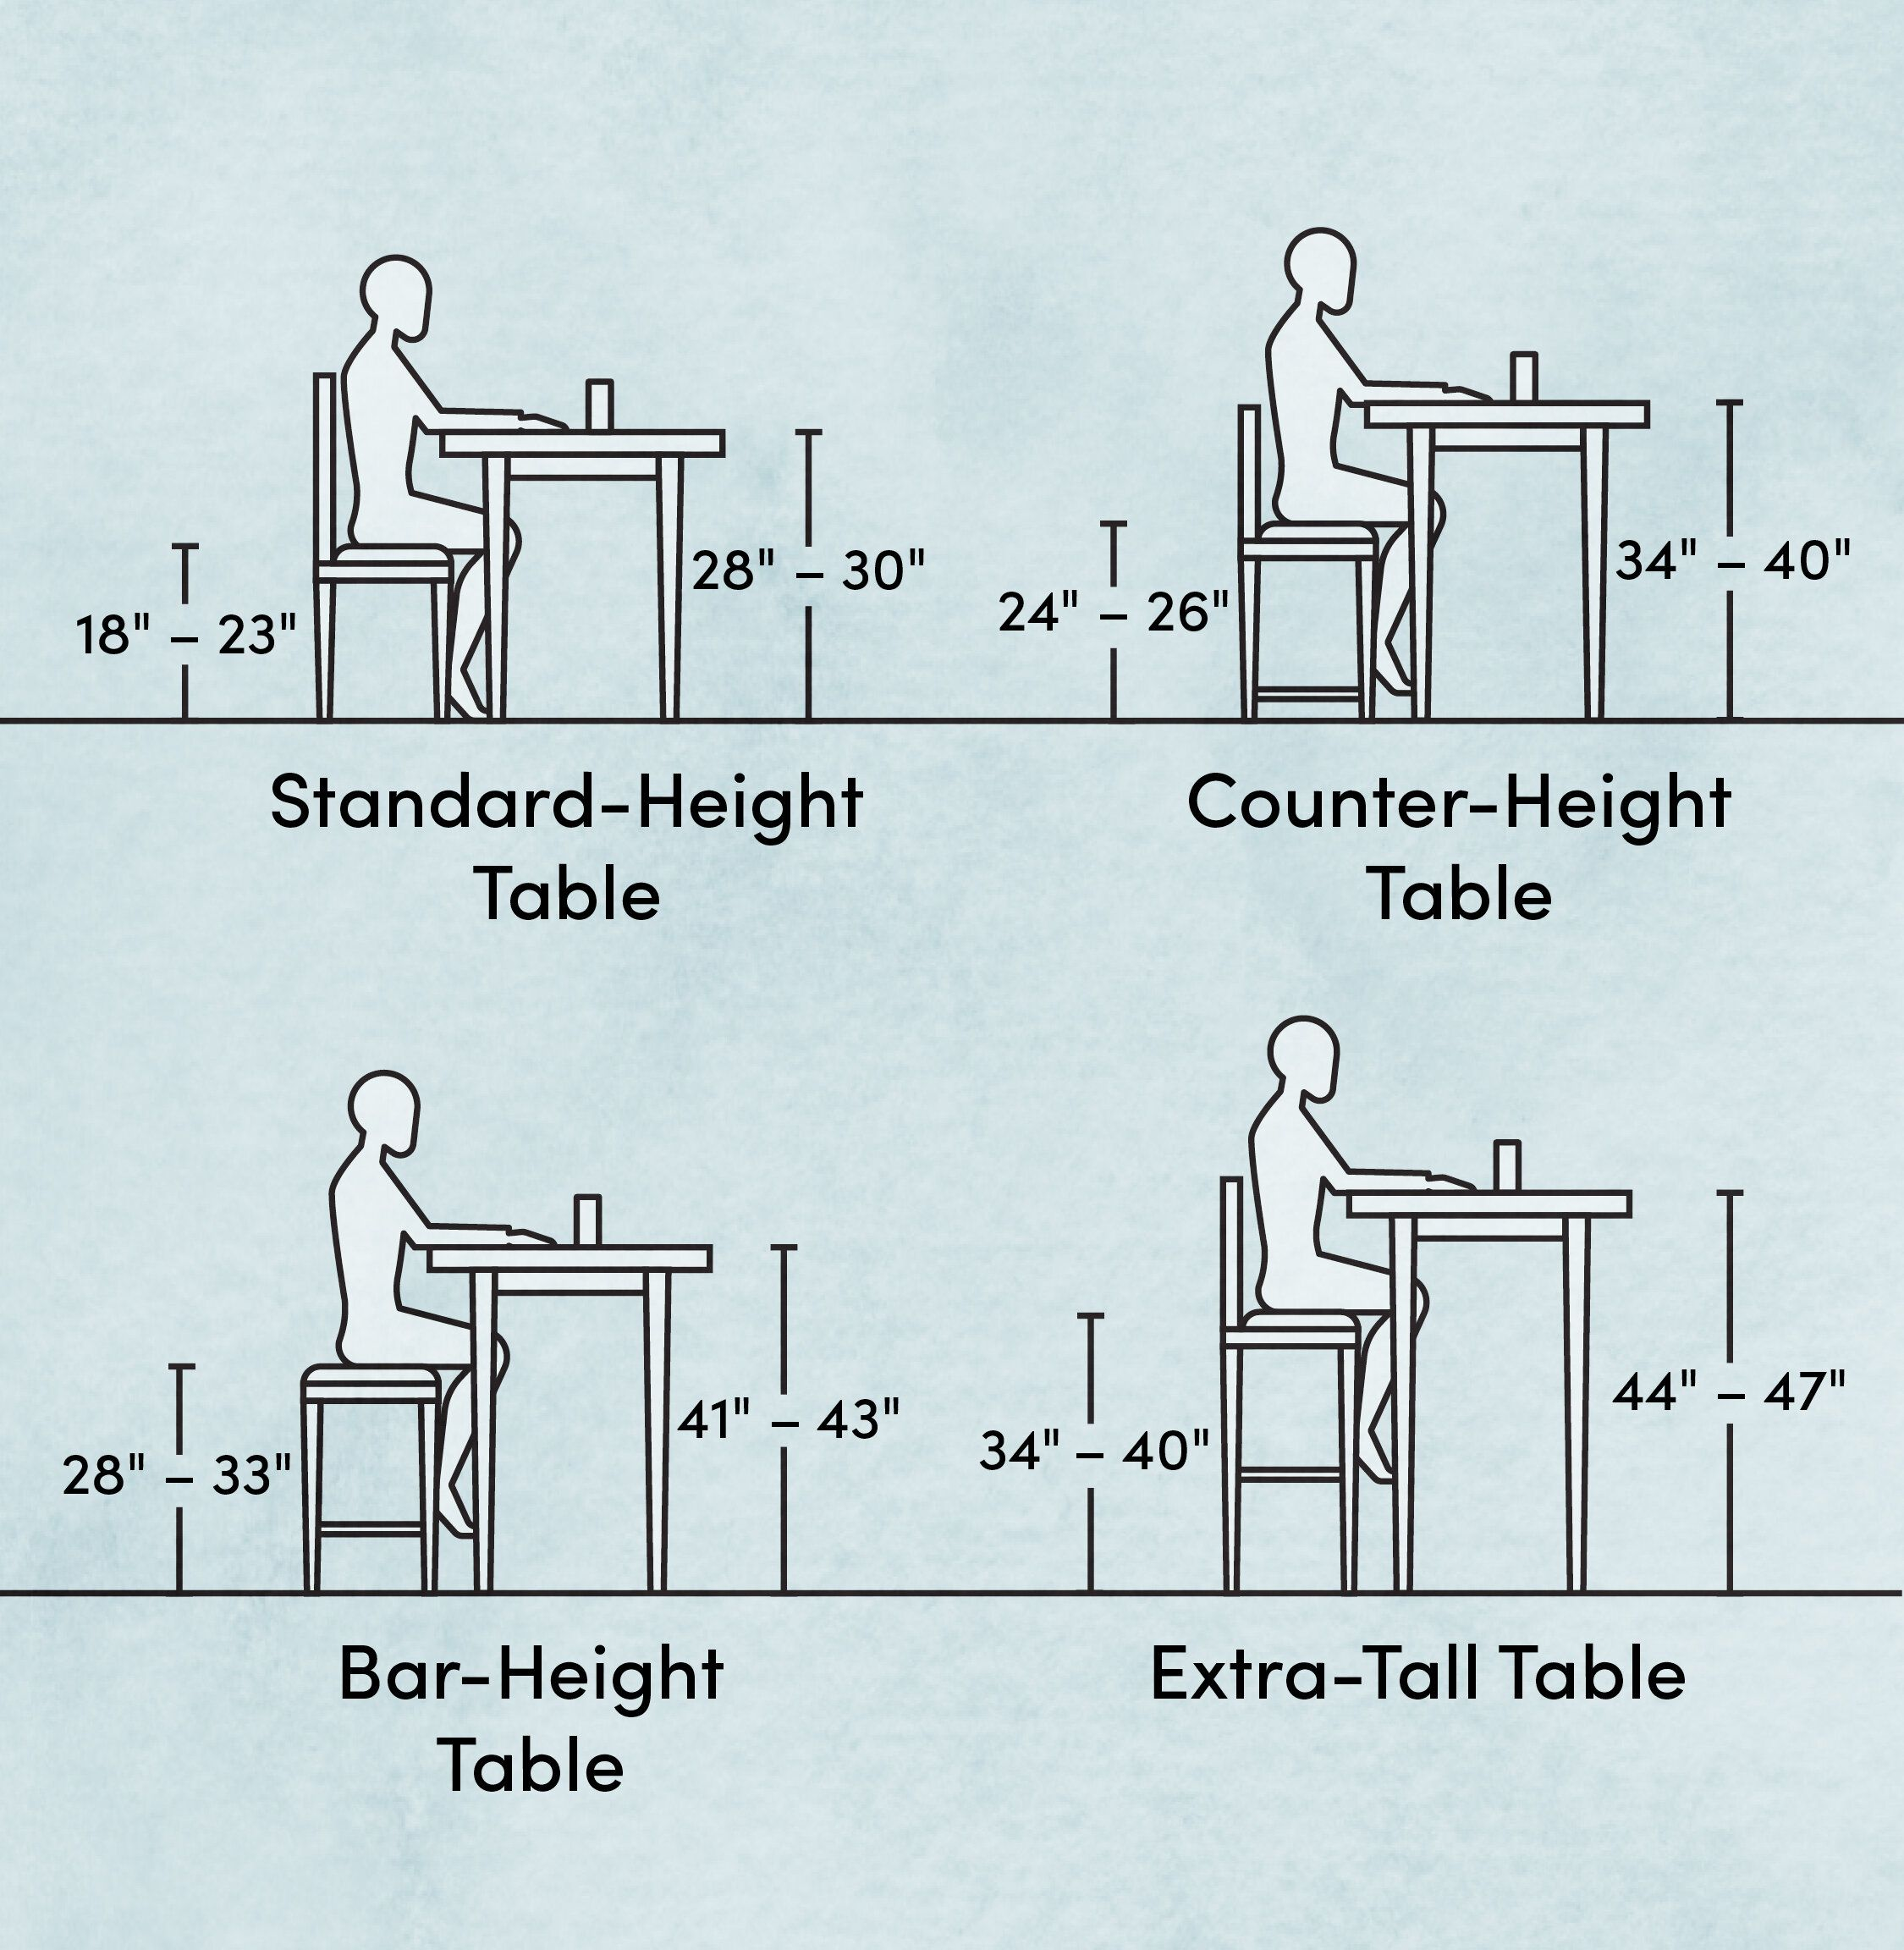 What Is The Standard Table Height The Types Of Tables And Chair Heights In 2021 Dining Table Height Bar Stools Bar Height Stools Living room table height